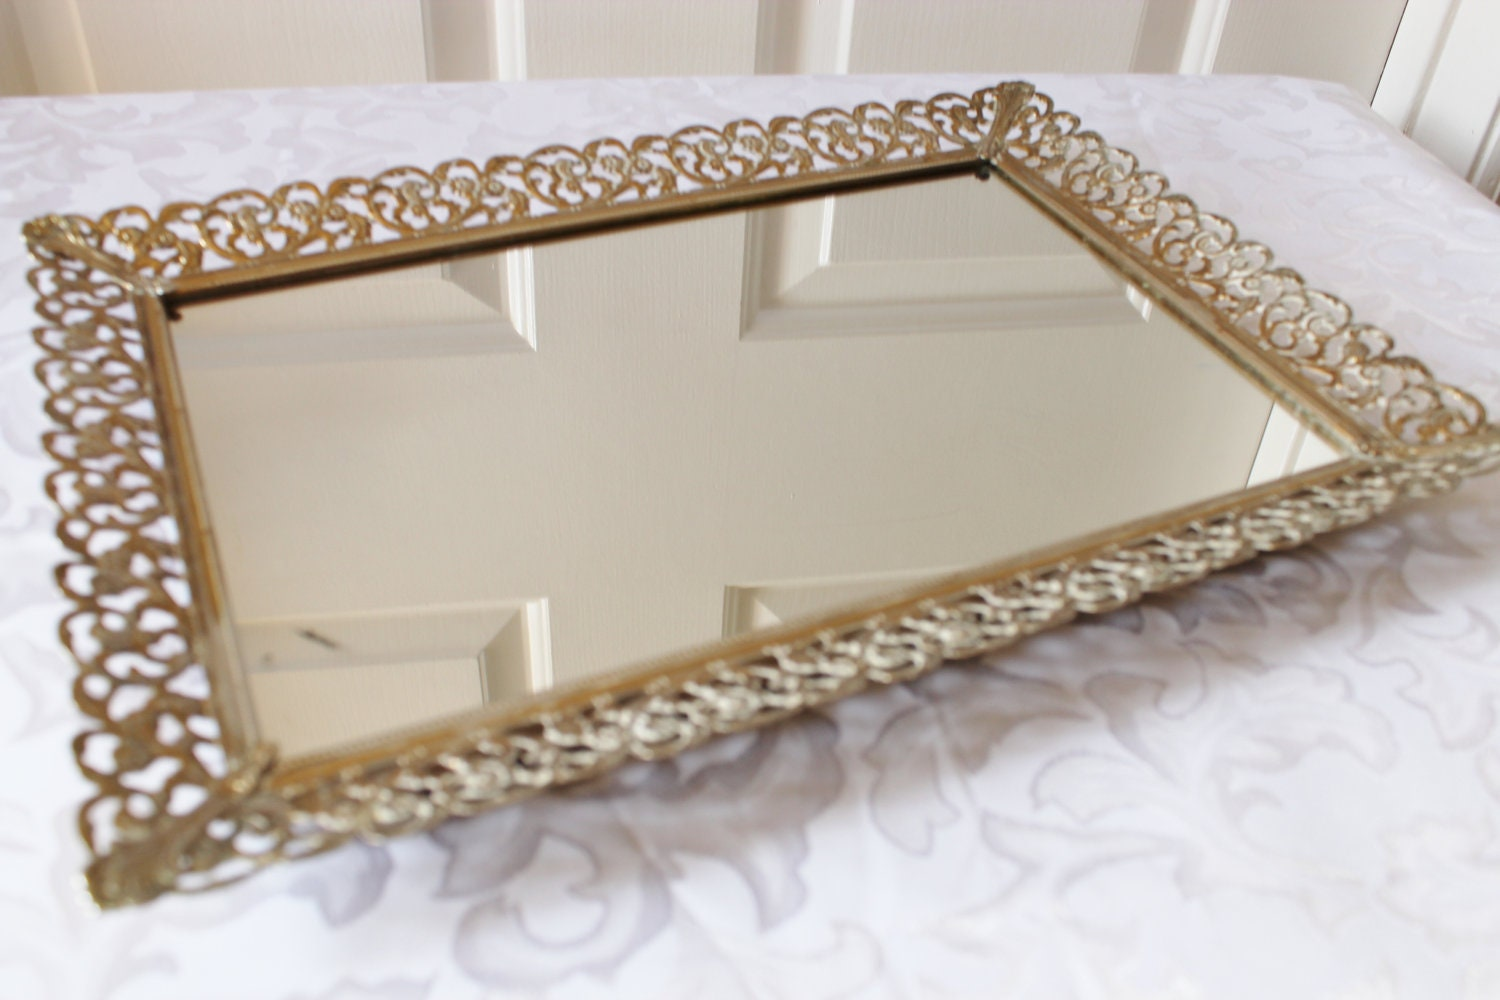 Vintage Gold Vanity Mirror Perfume Tray Metal by  : ilfullxfull365203769runh from www.etsy.com size 1500 x 1000 jpeg 177kB